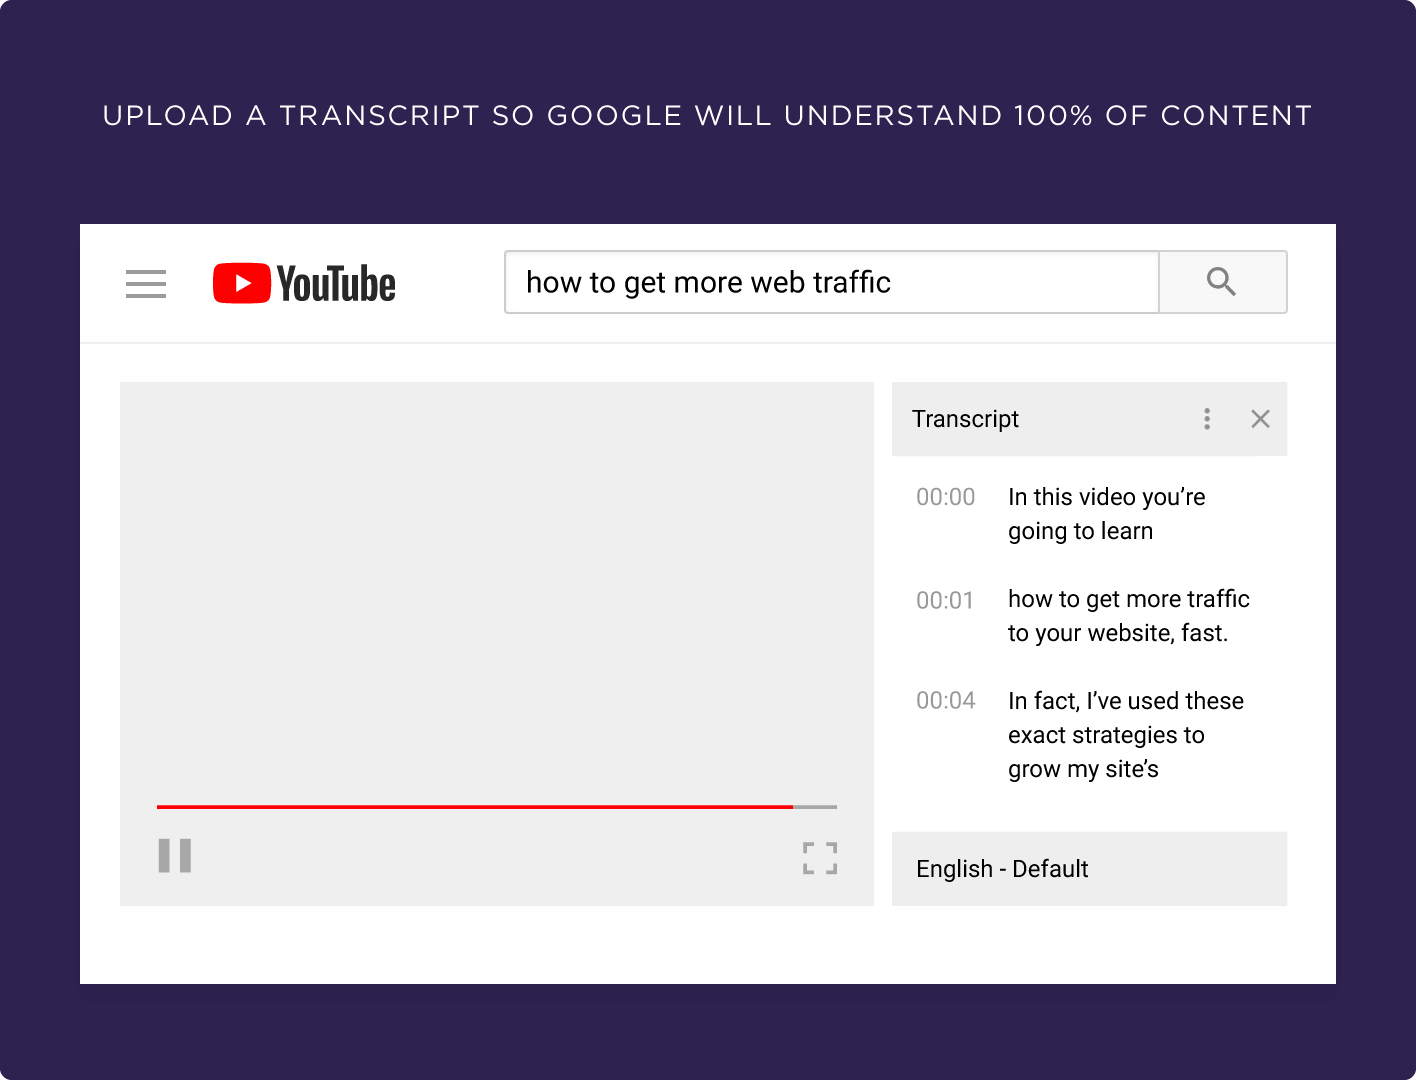 Upload a transcript so Google will understand 100% of content